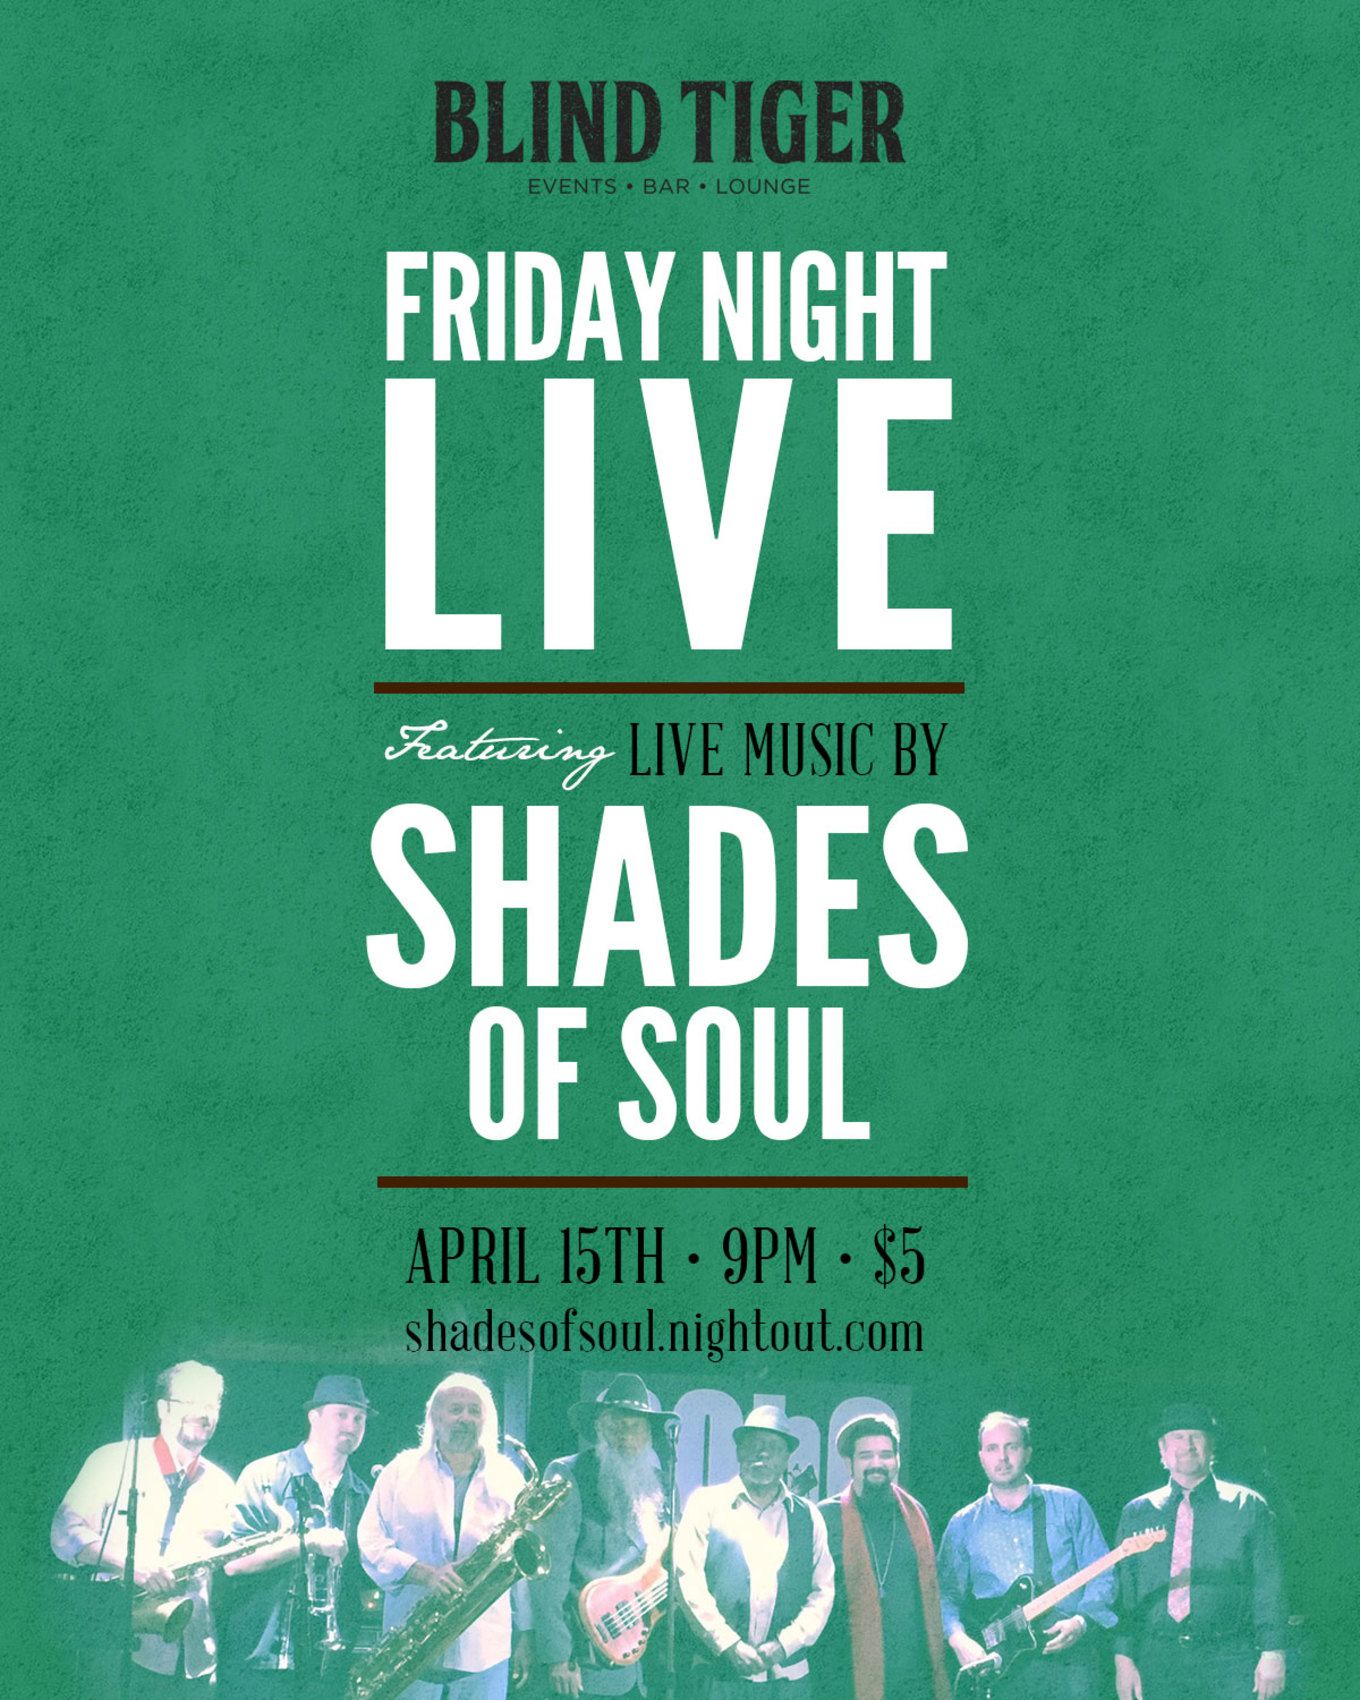 4/15/16 Blind Tiger Presents Friday Night Live Featuring Shades of ...